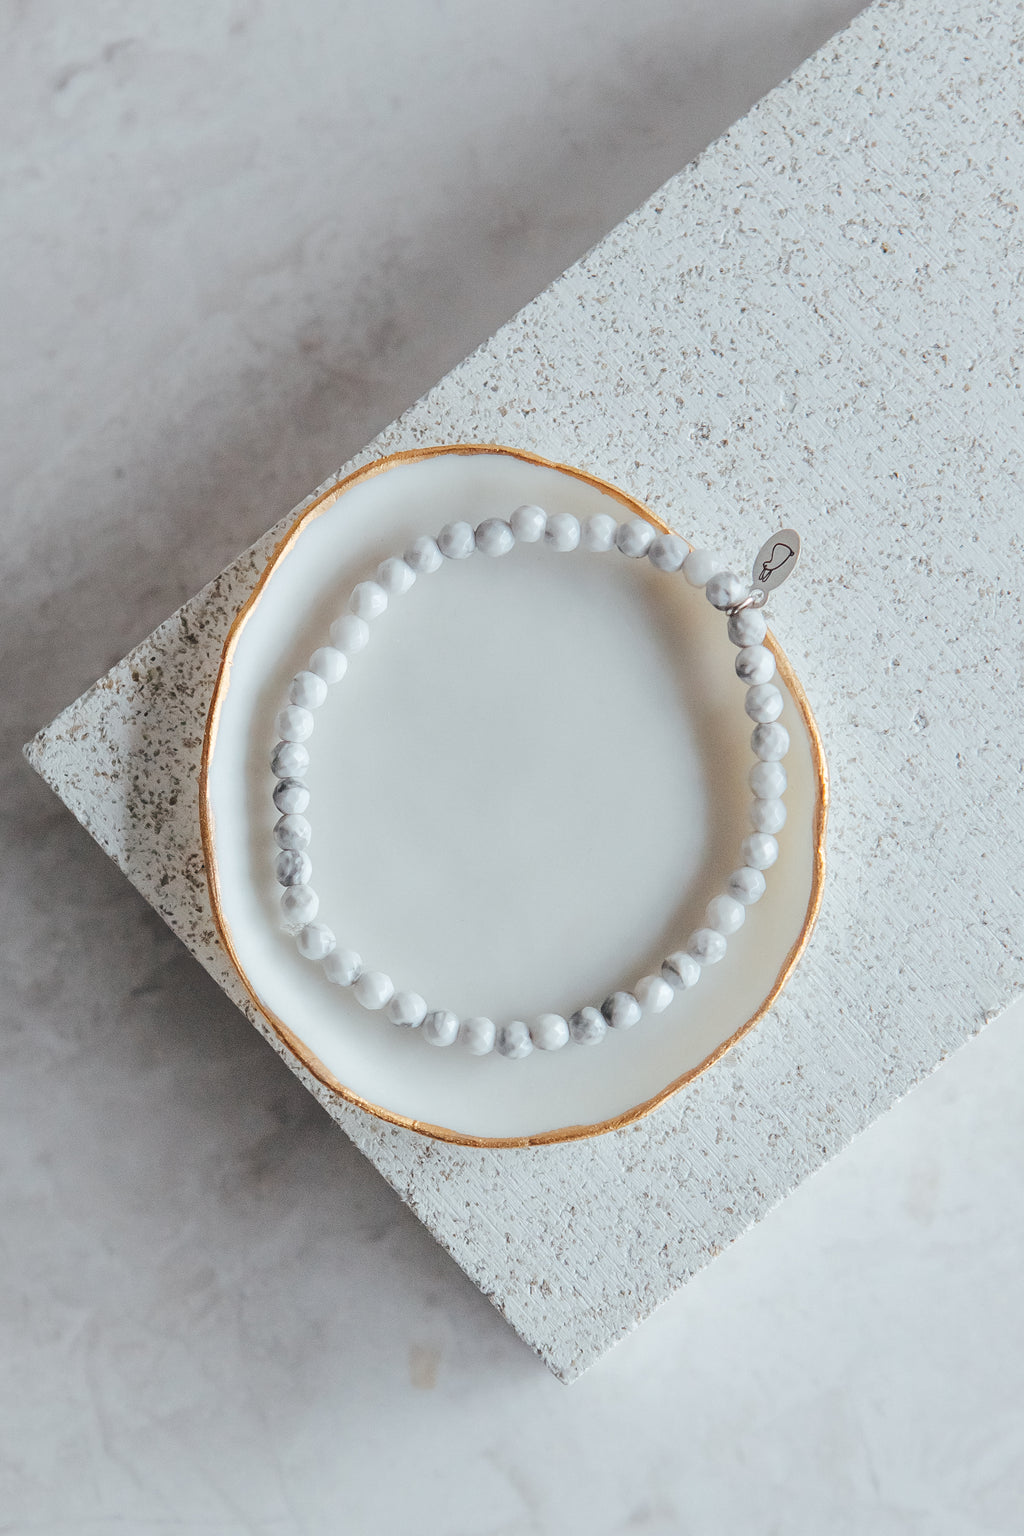 The 'diva of bliss' bracelet | White Howlite